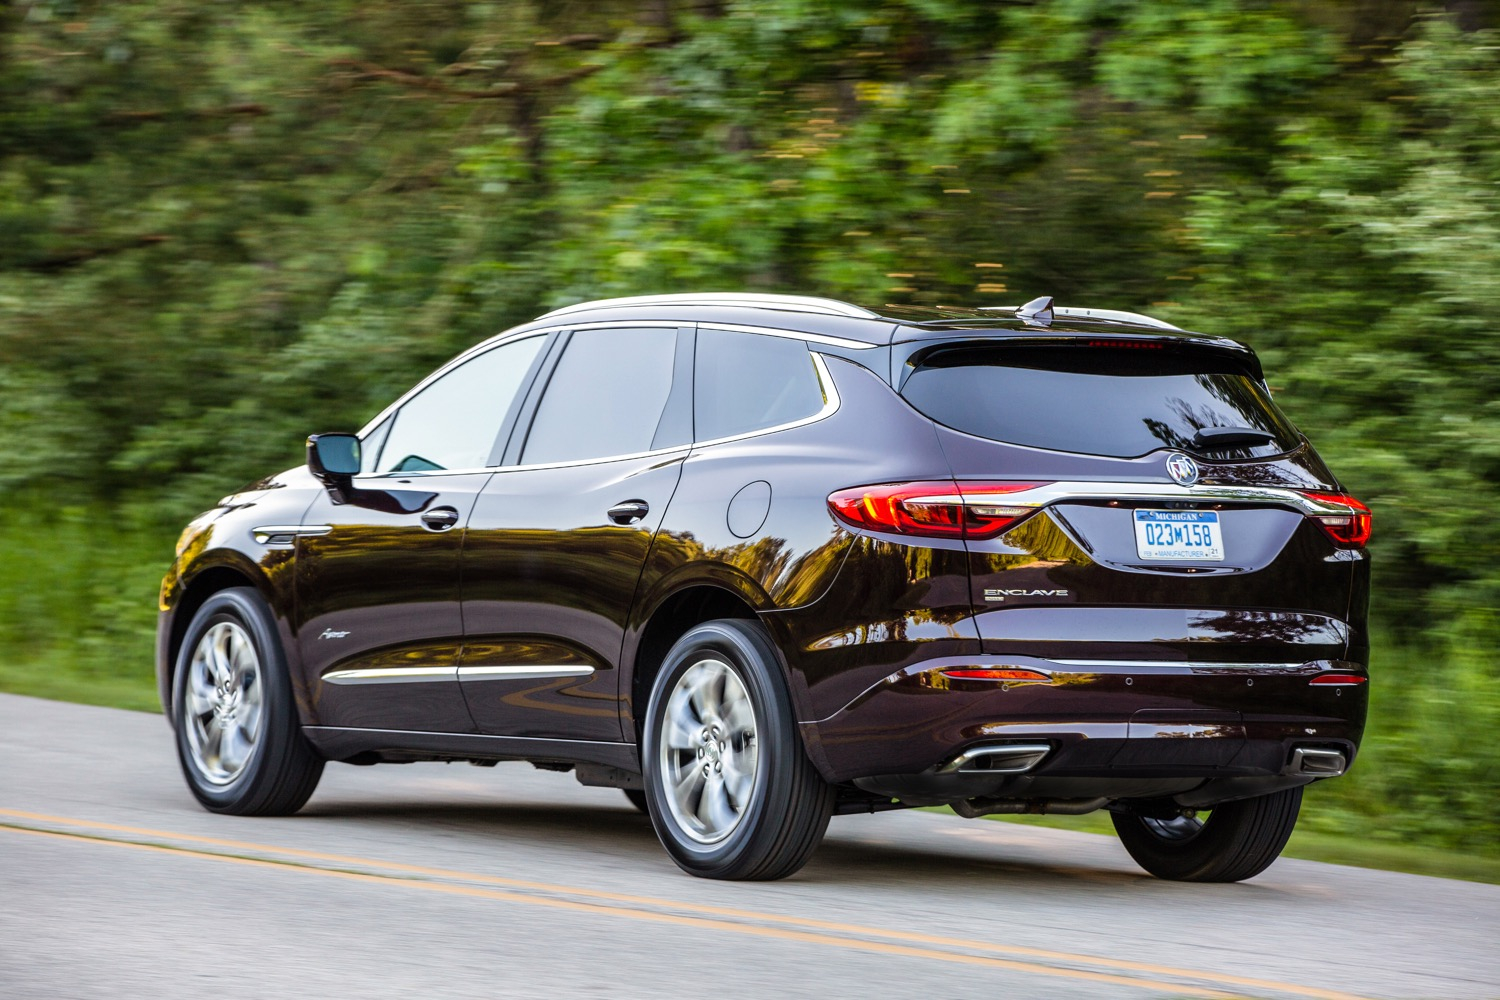 All The Changes Made To The 2020 Buick Enclave | Gm Authority New 2021 Buick Enclave Trims, Transmission Problems, Used